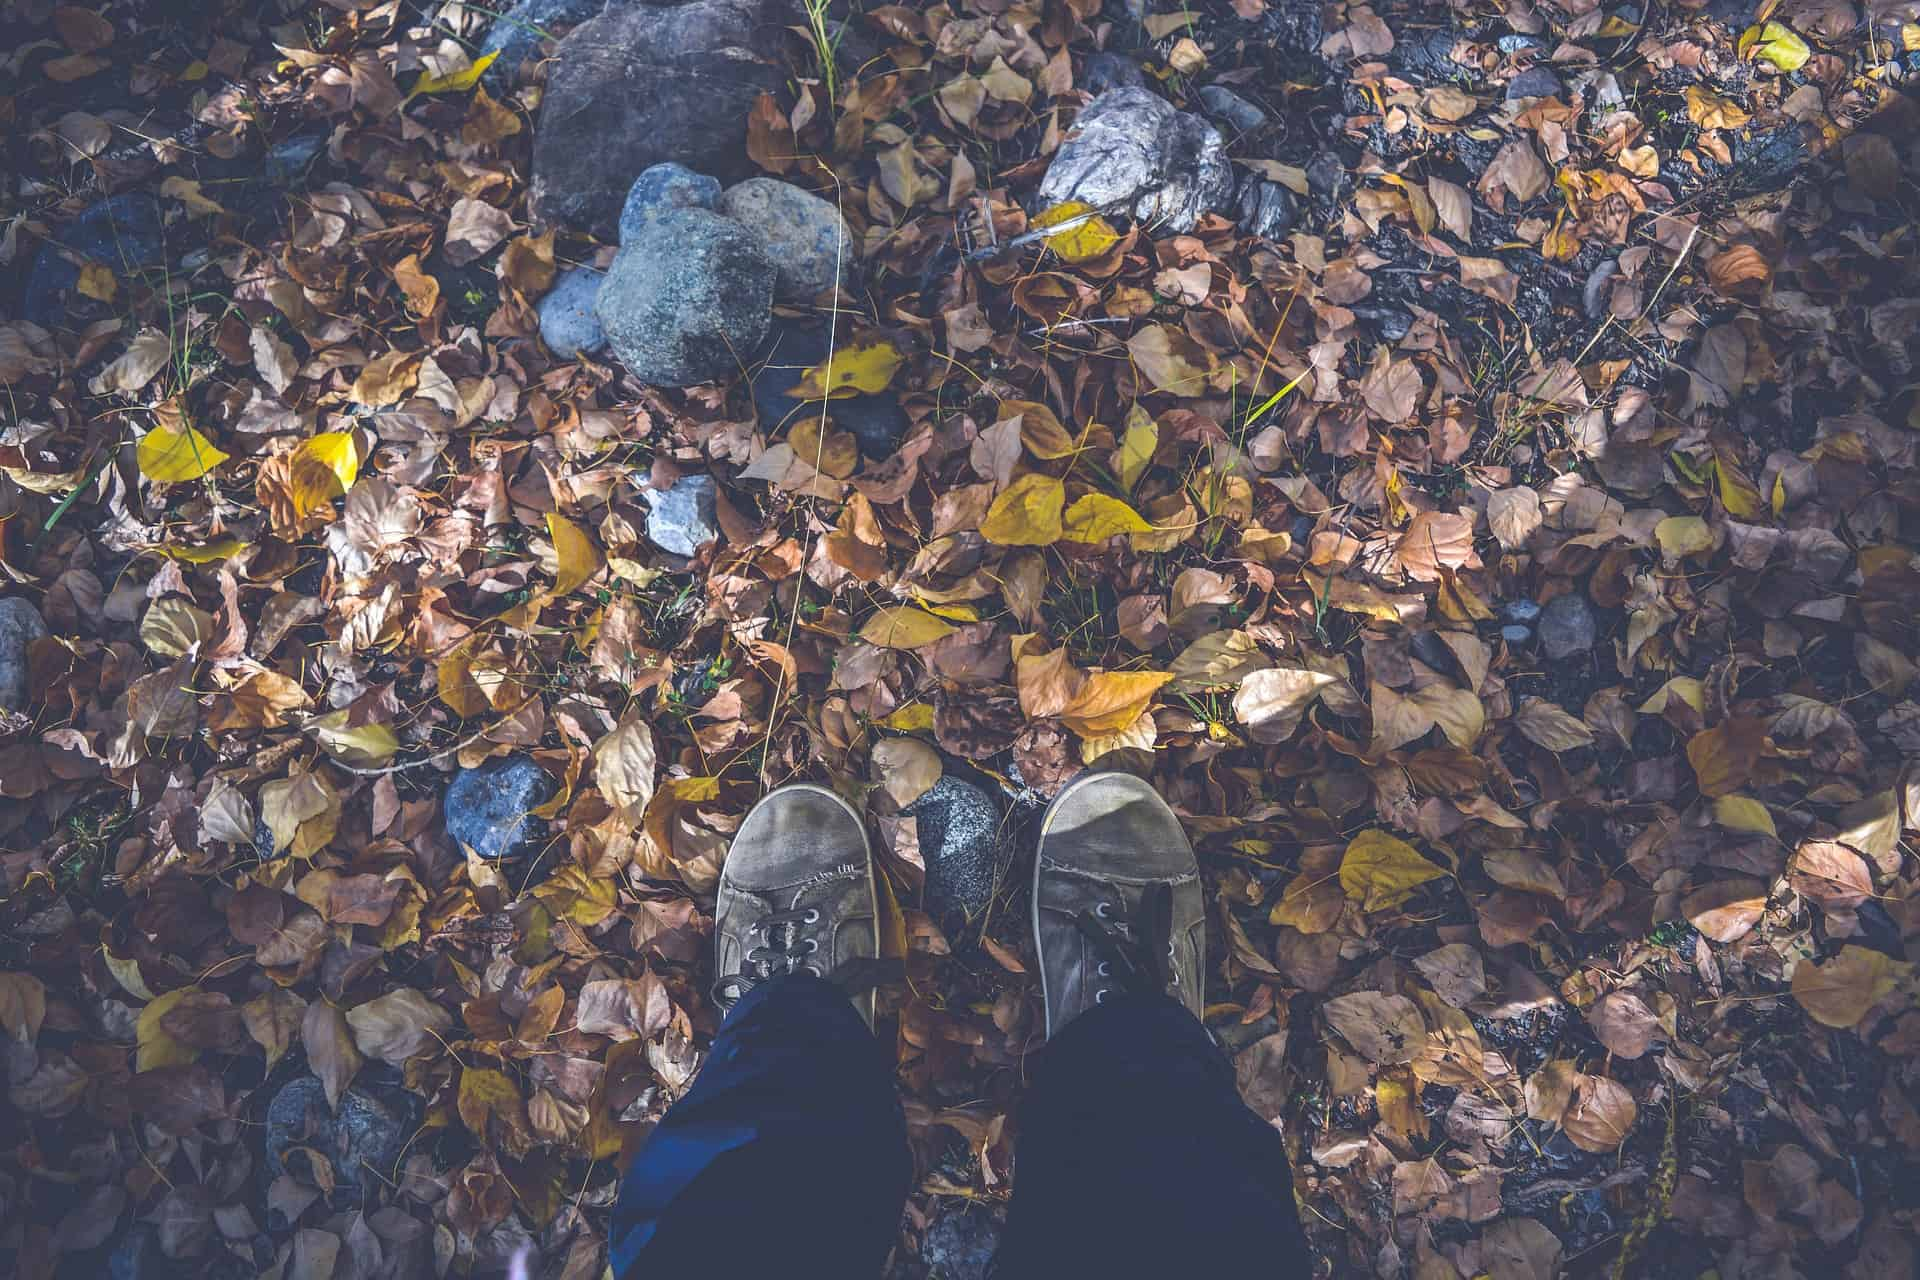 A person's feet wearing a boots and touching the dry leaves while standing in the forest